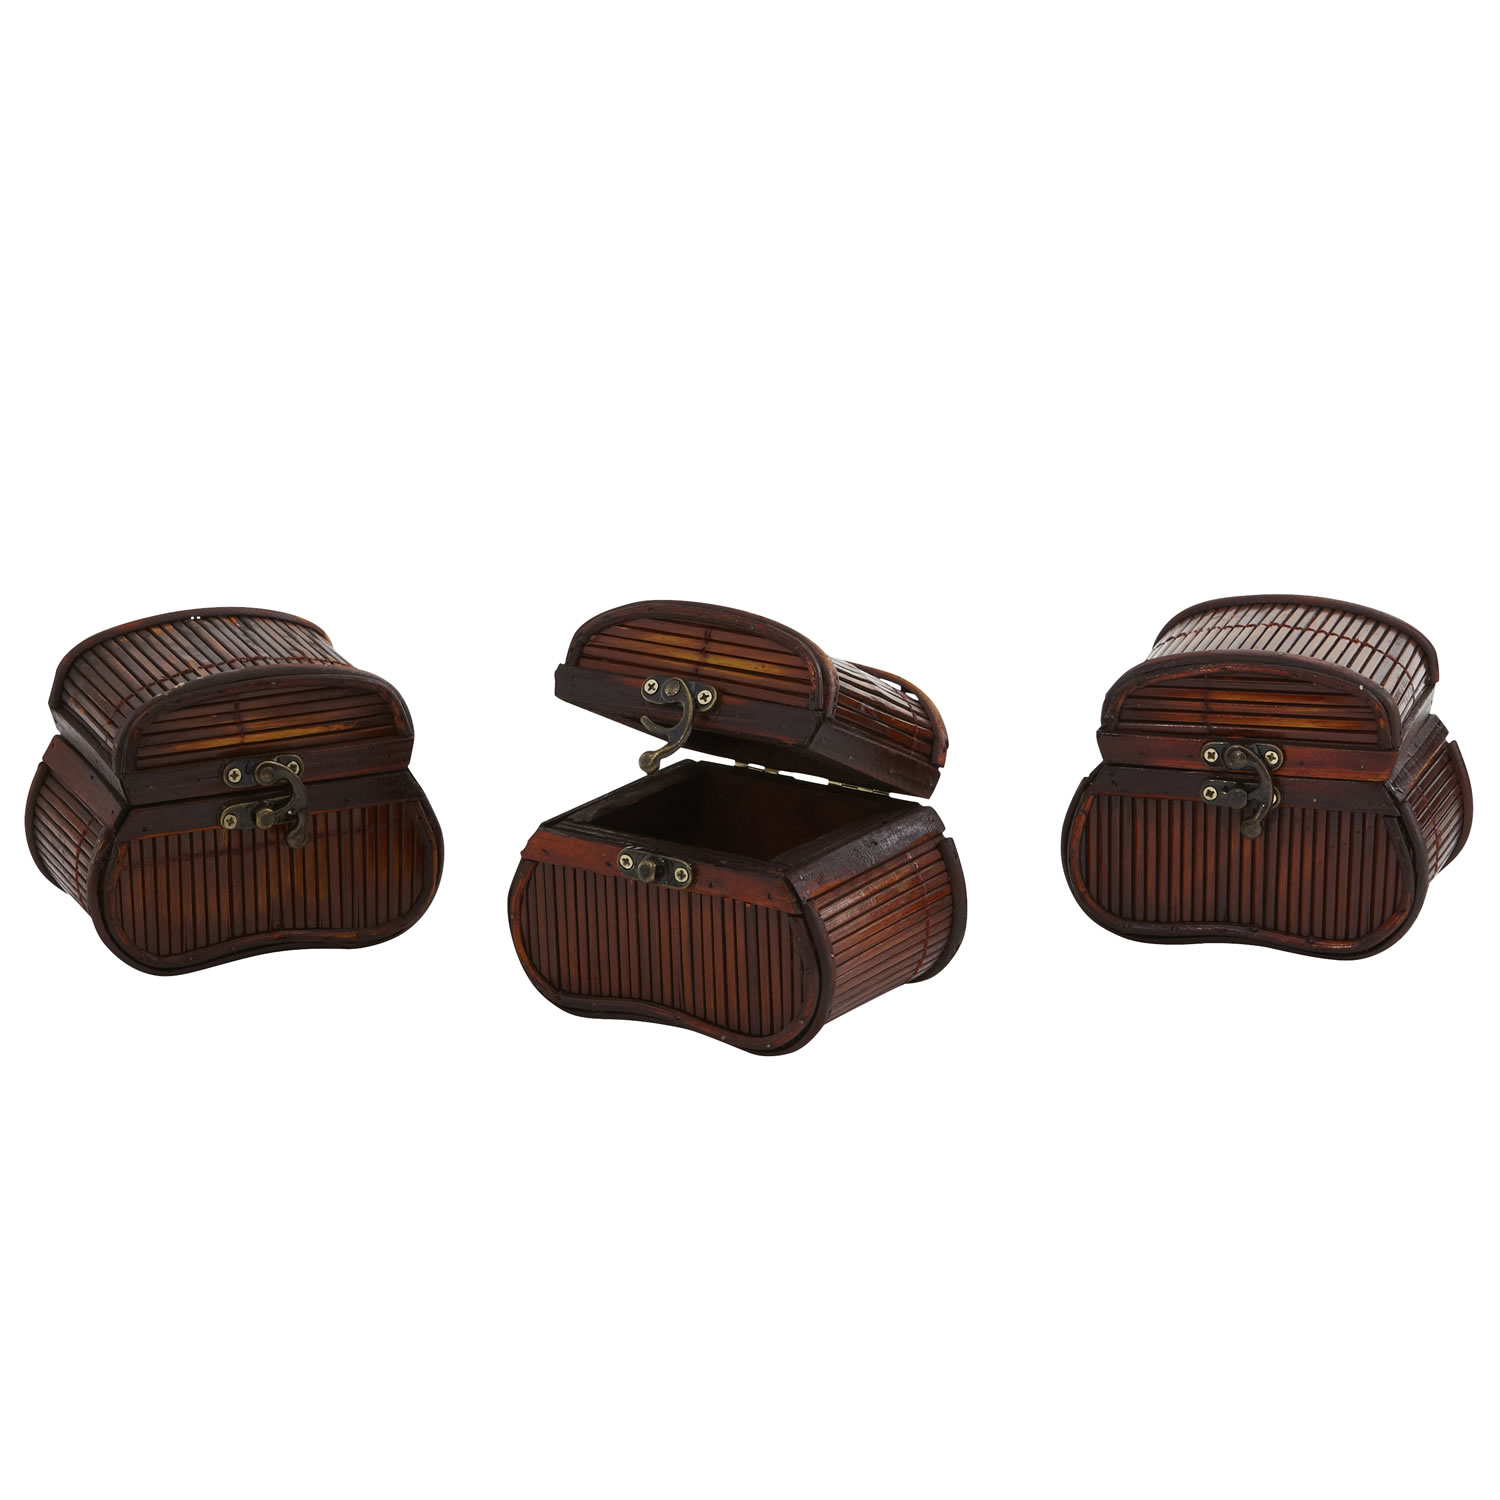 Nearly Natural 0544-S3 Bamboo Chests (Set of 3) - NN_0544-S3